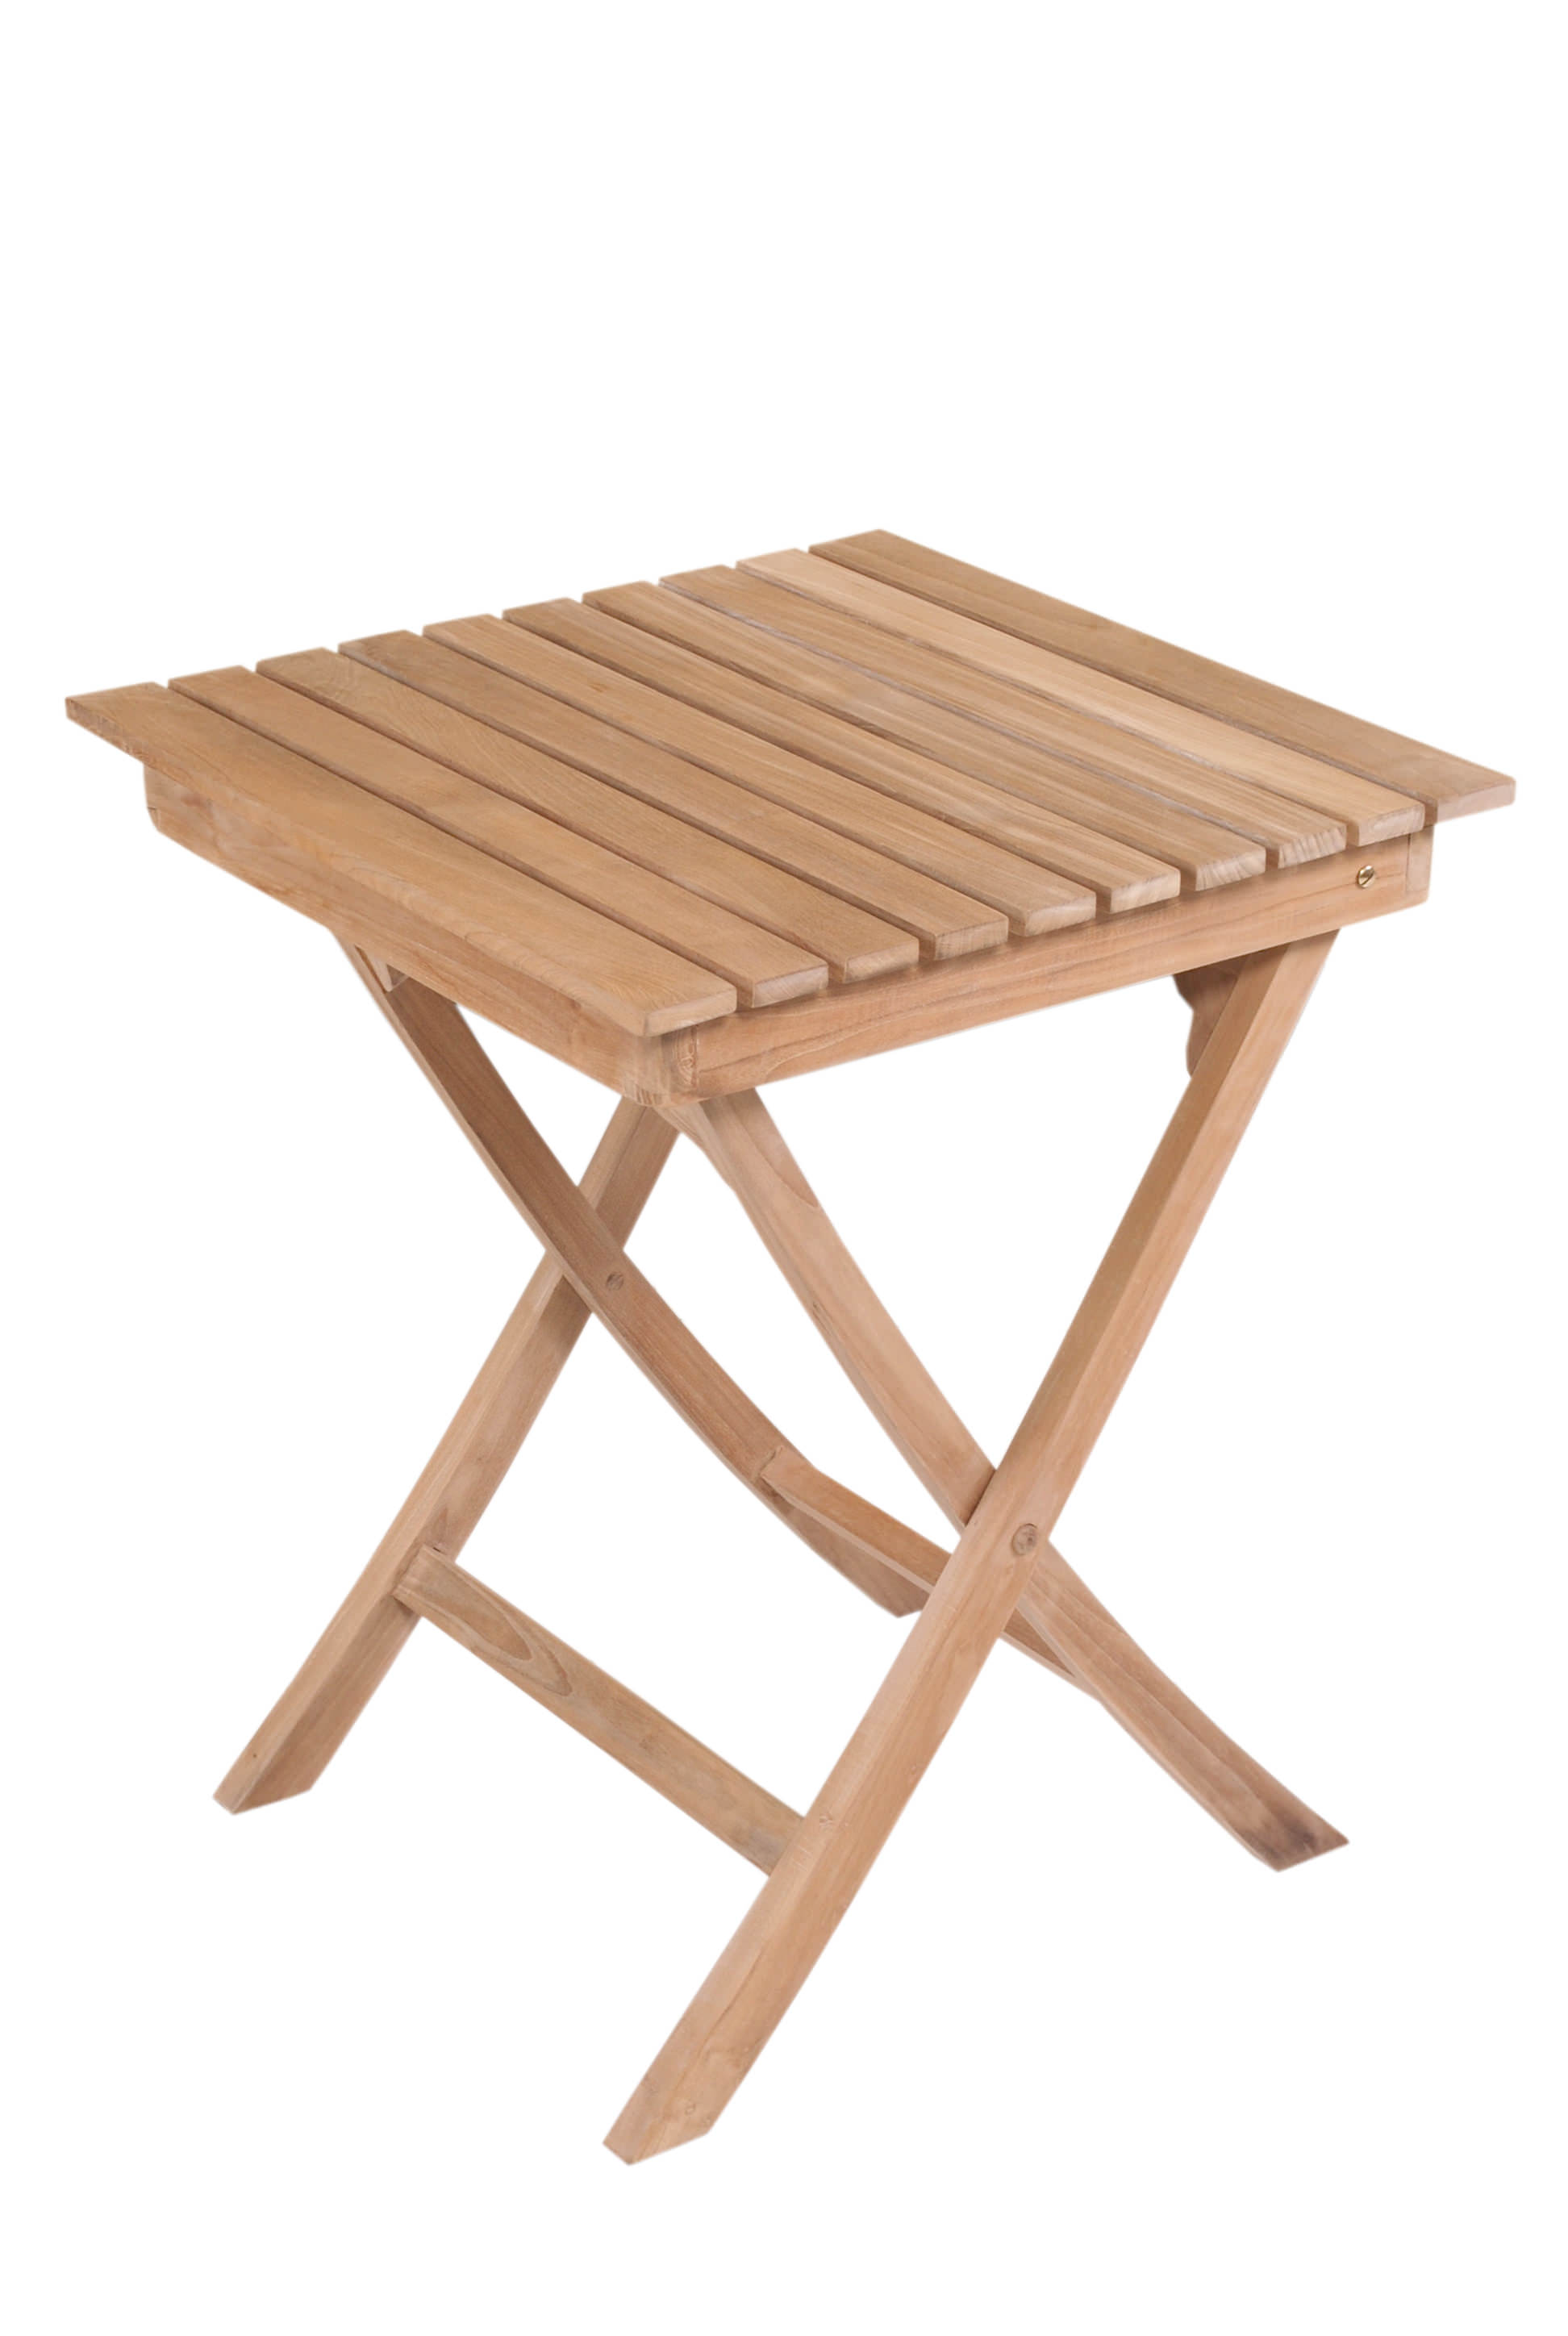 square folding table 60 cm